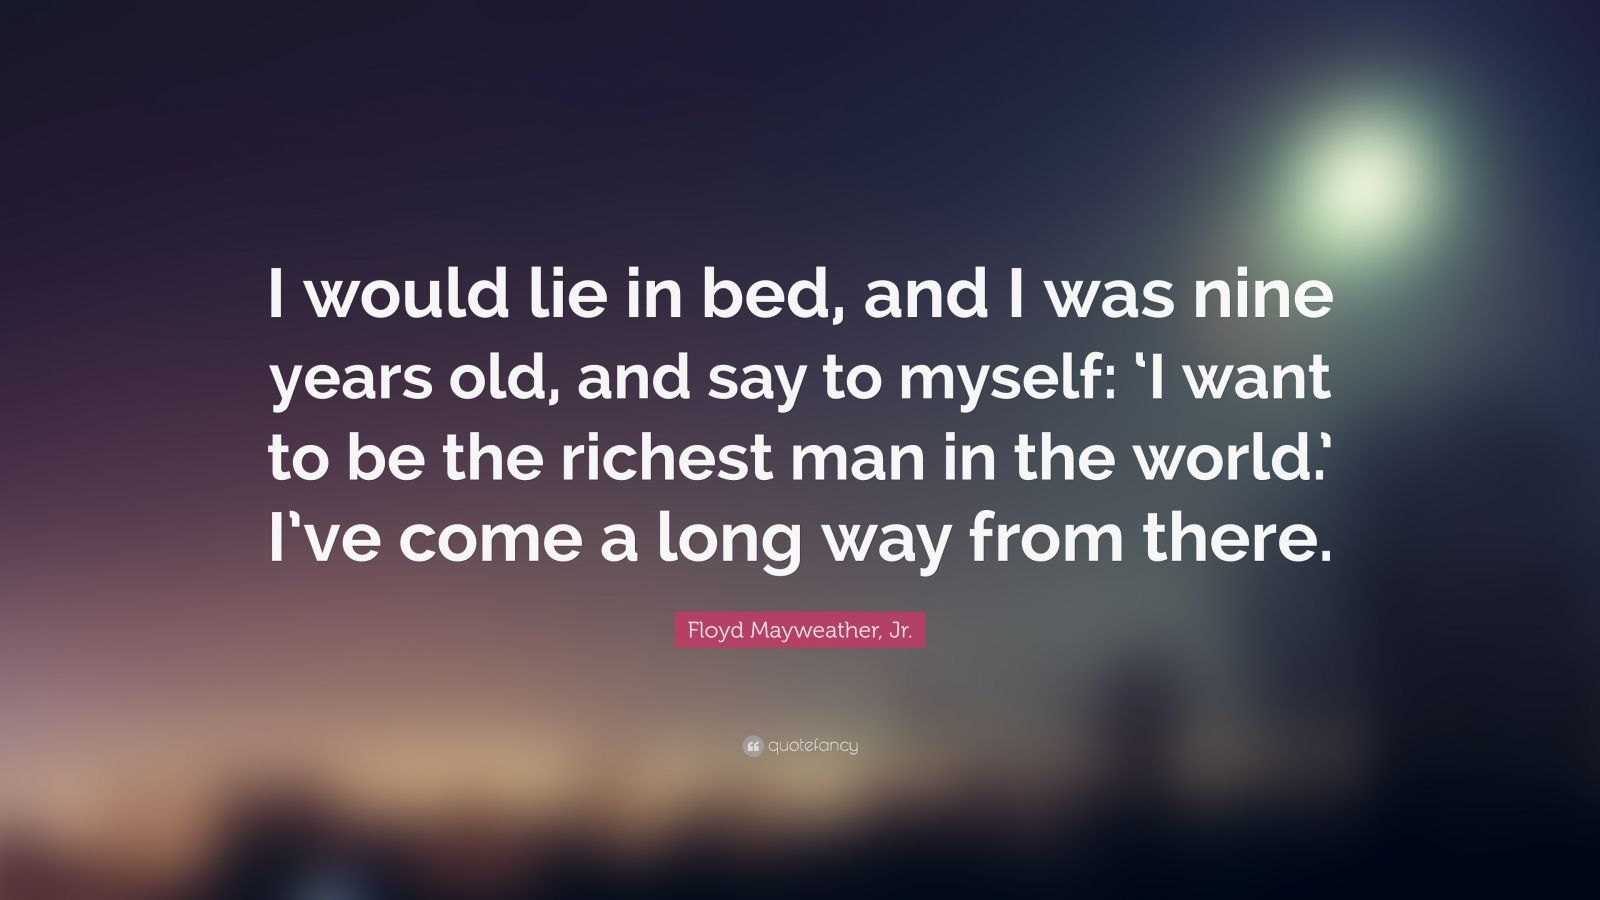 """Floyd Mayweather, Jr. Quote: """"I would lie in bed, and I was nine years old, and say to myself: 'I want to be the richest man in the world.' I've come a long way from there."""""""